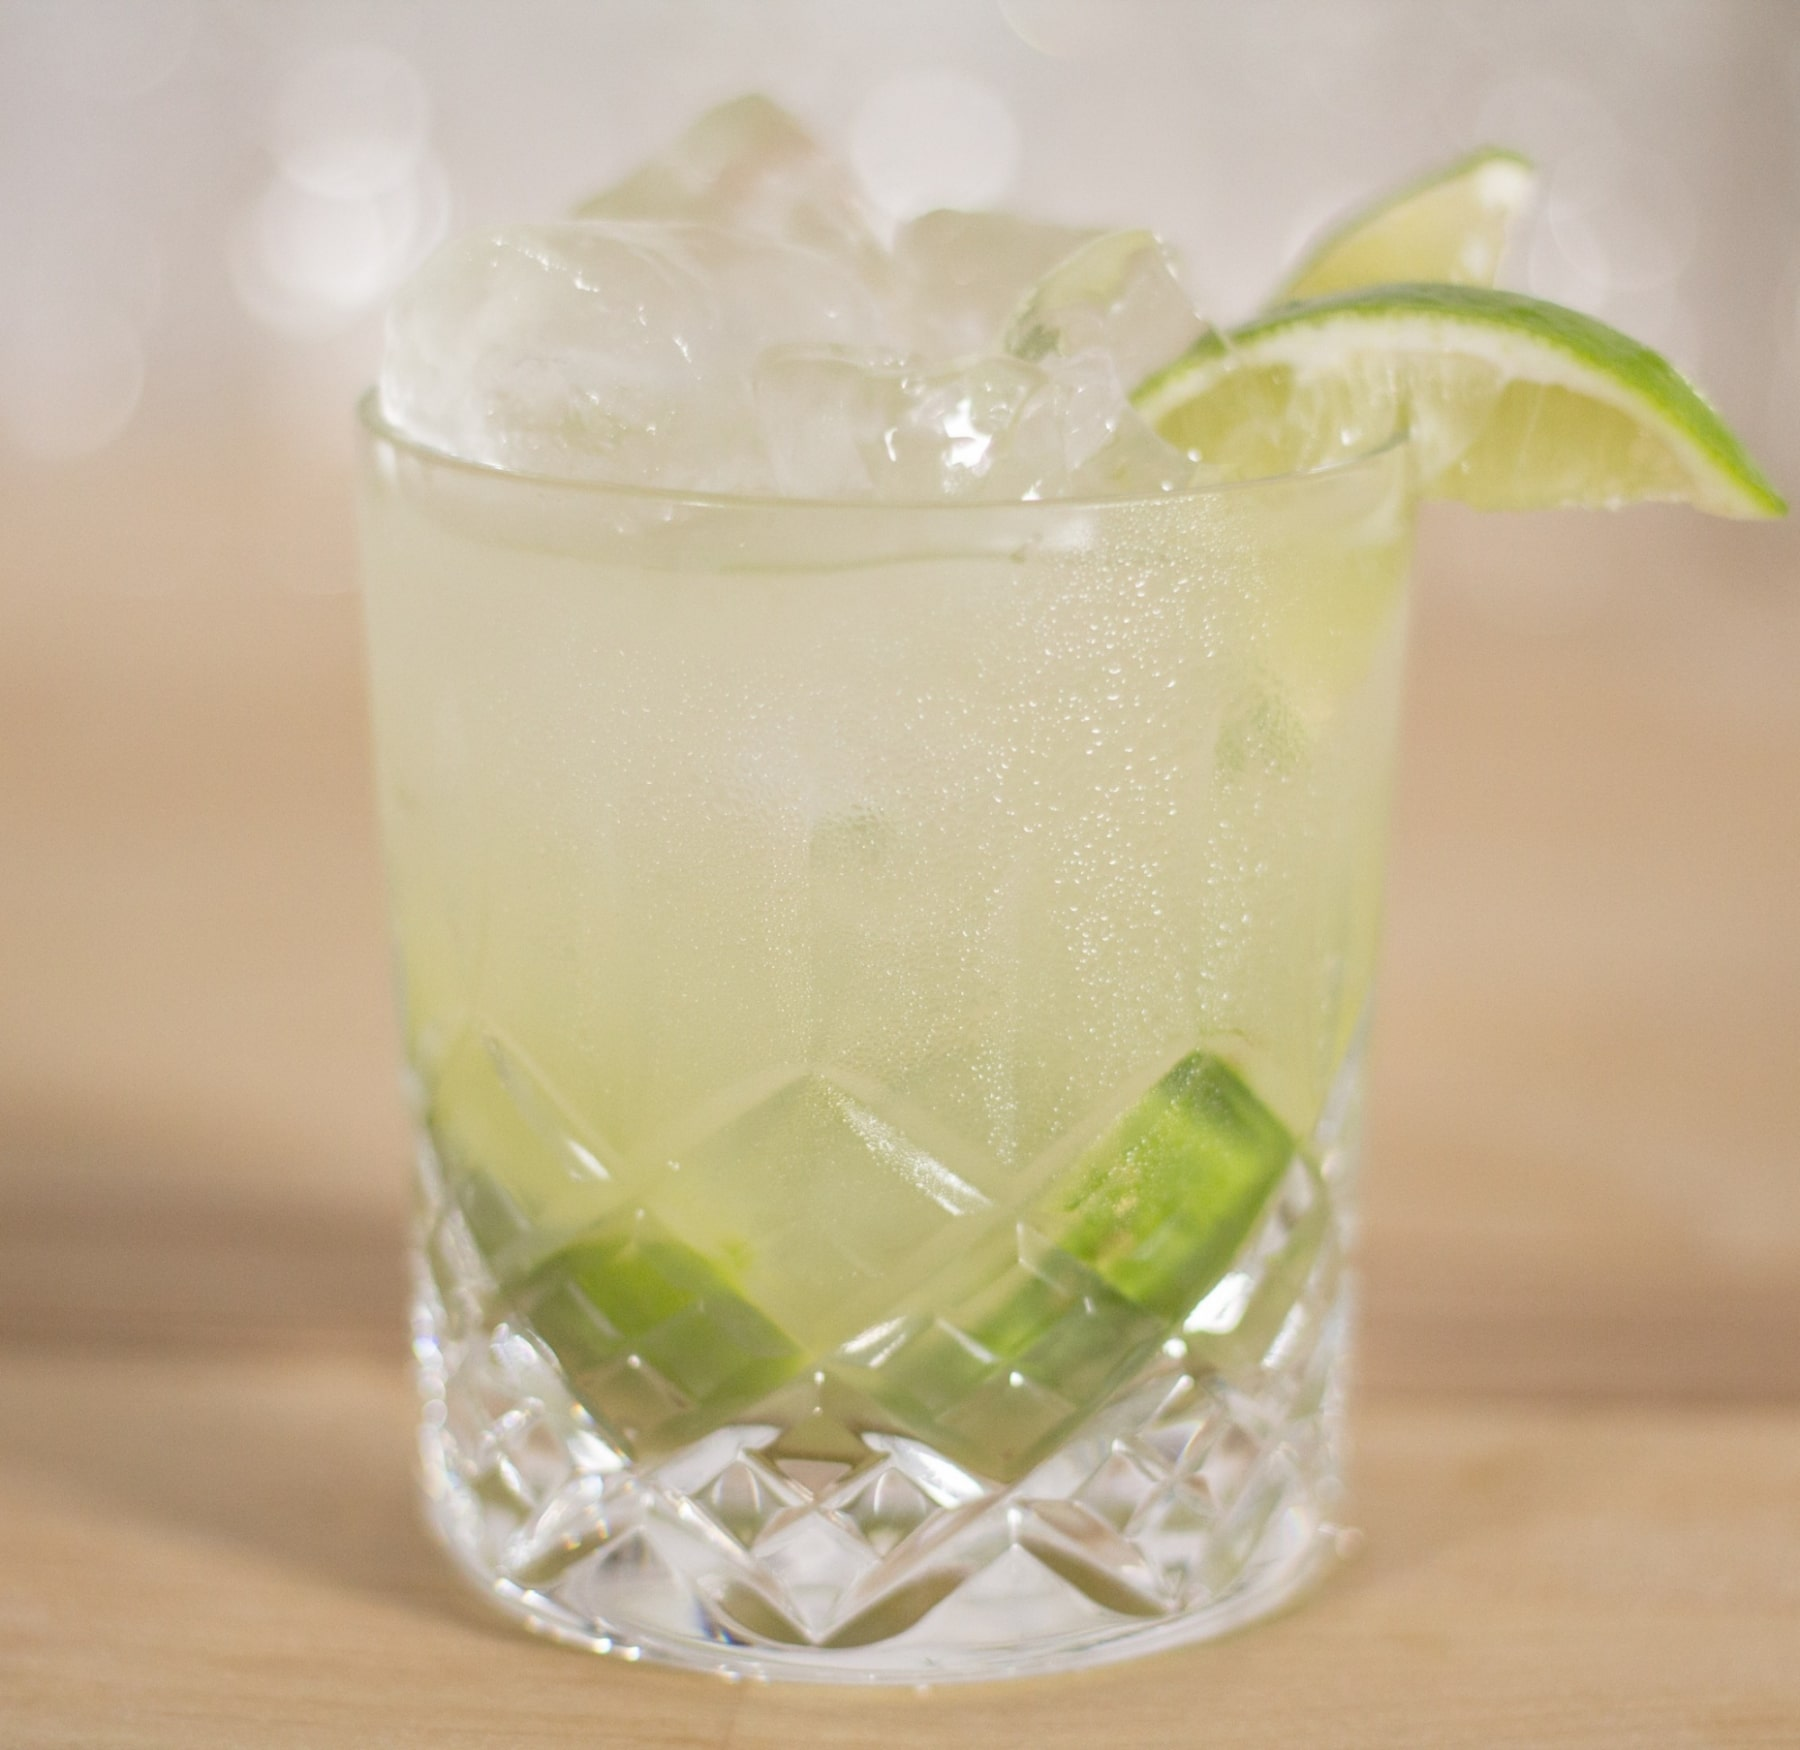 caipiroska poured in glass with lemon